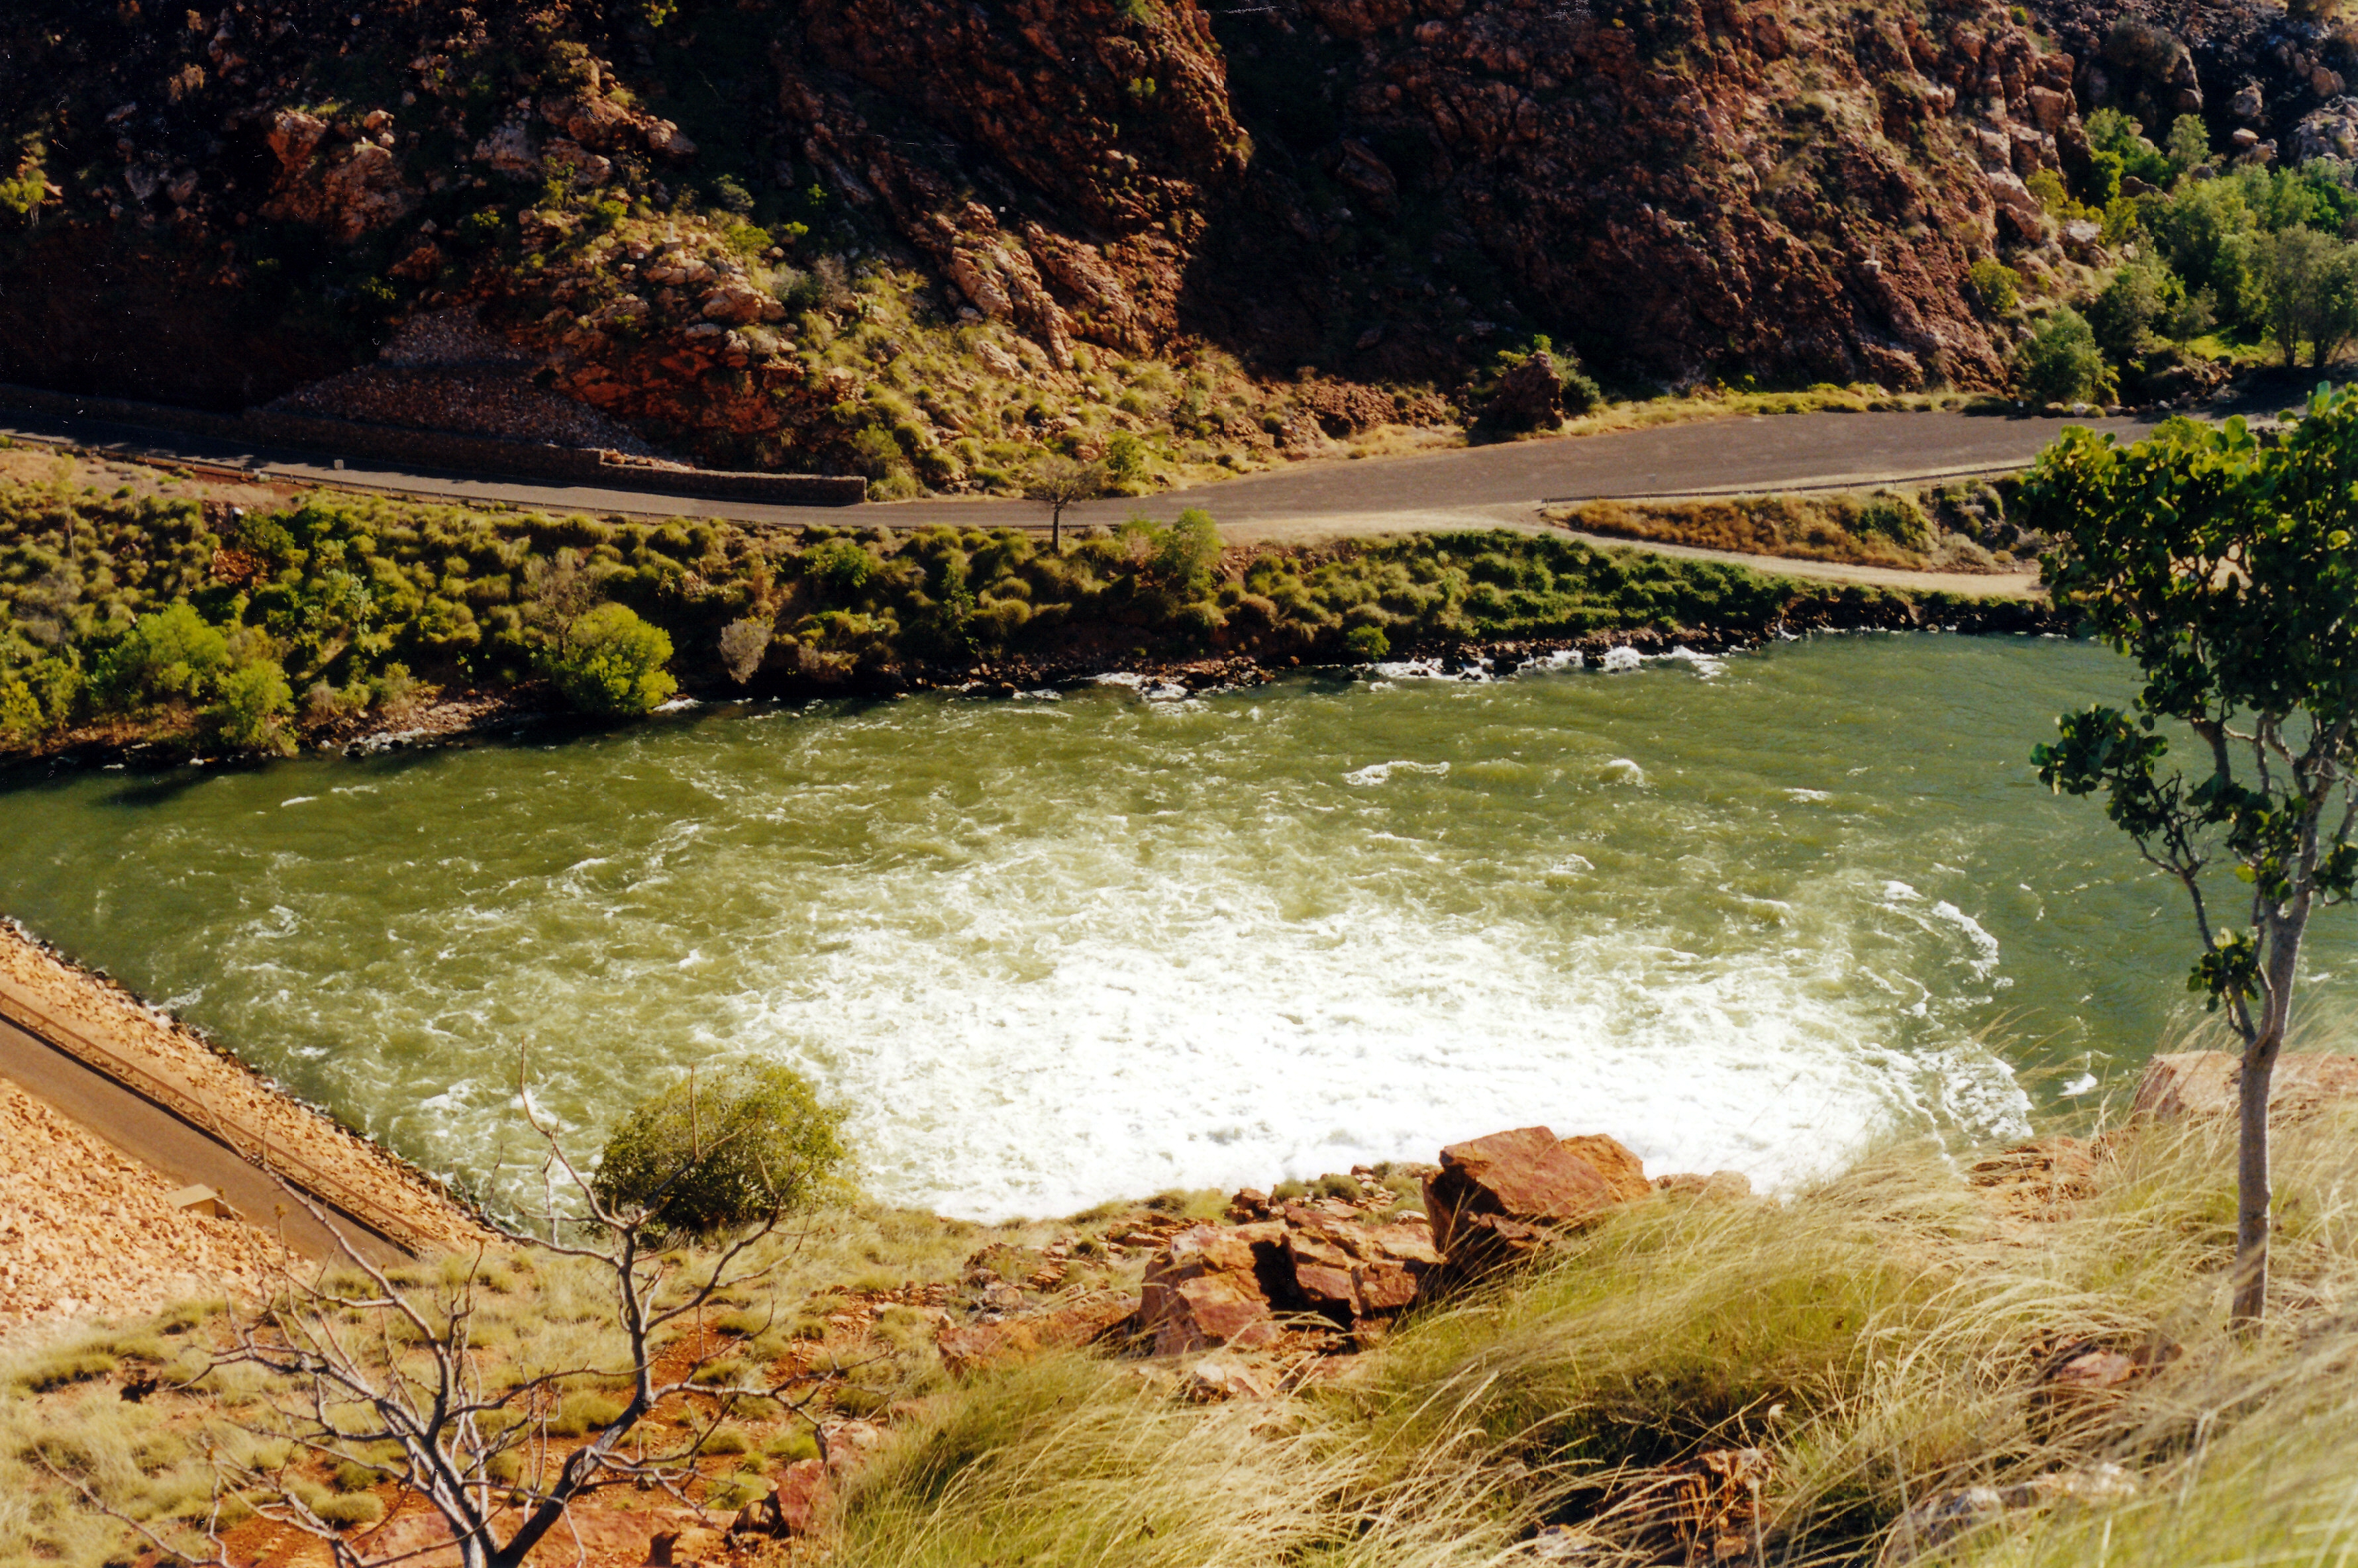 06-27-2000 03 Lake Argyle outflow from hydro plant.jpg